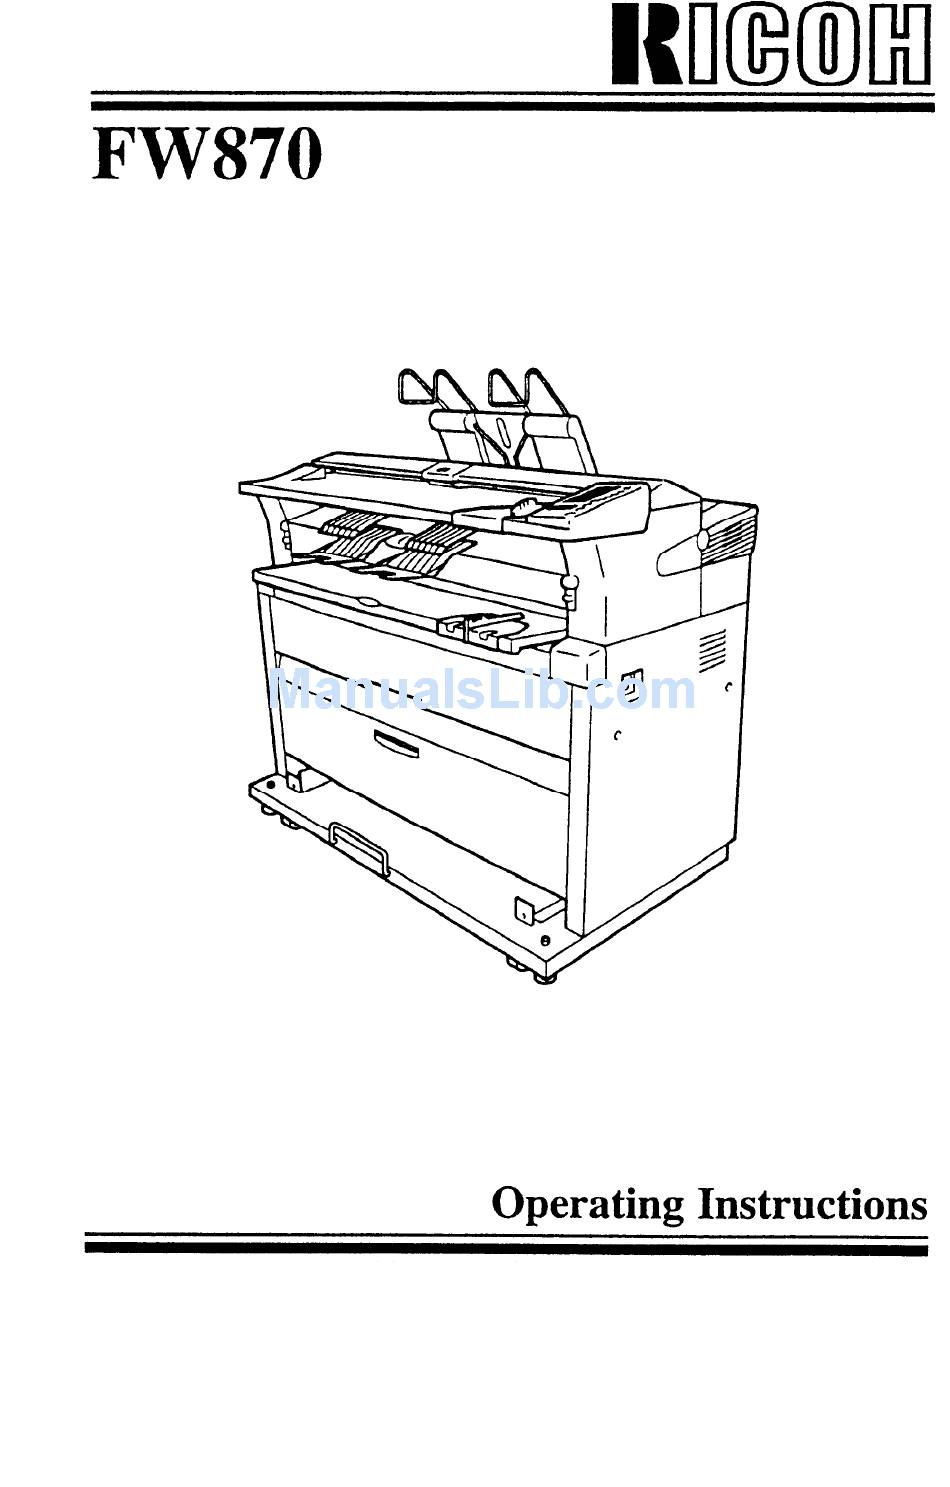 RICOH FW870 OPERATING INSTRUCTIONS MANUAL Pdf Download